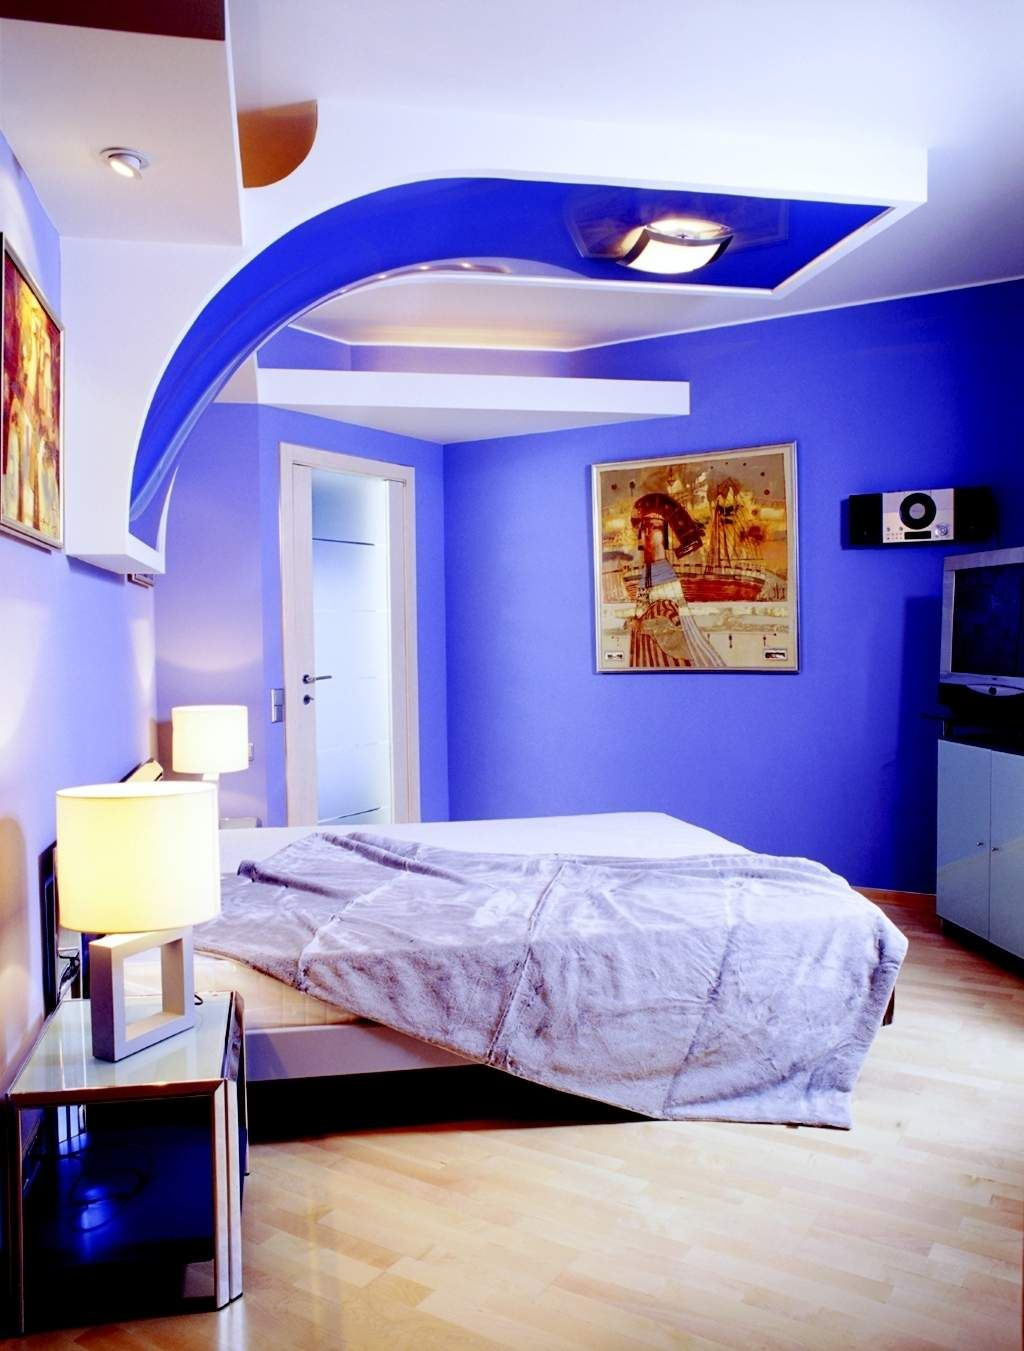 Bedroom design ideas blue - Kids Bedroom Futuristic Design Of Boys Bedroom In Bright Blue And White Color Scheme Cool Color